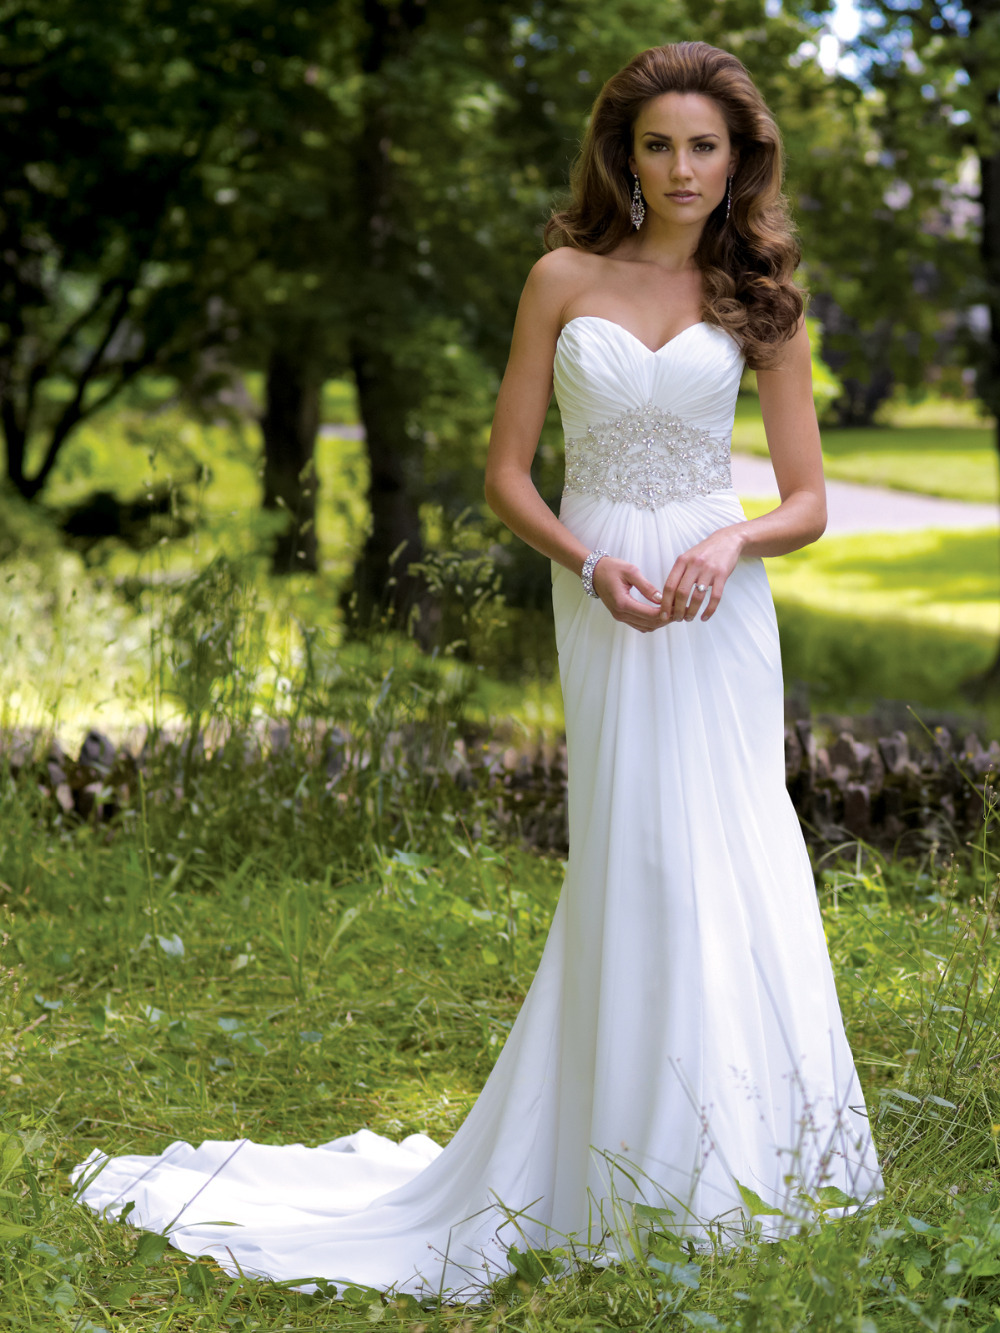 Wedding Casual Wedding Dresses For Summer casual wedding dresses summer perfect for white simple dress satin gowns with beading elegant bride robe de mariage2016